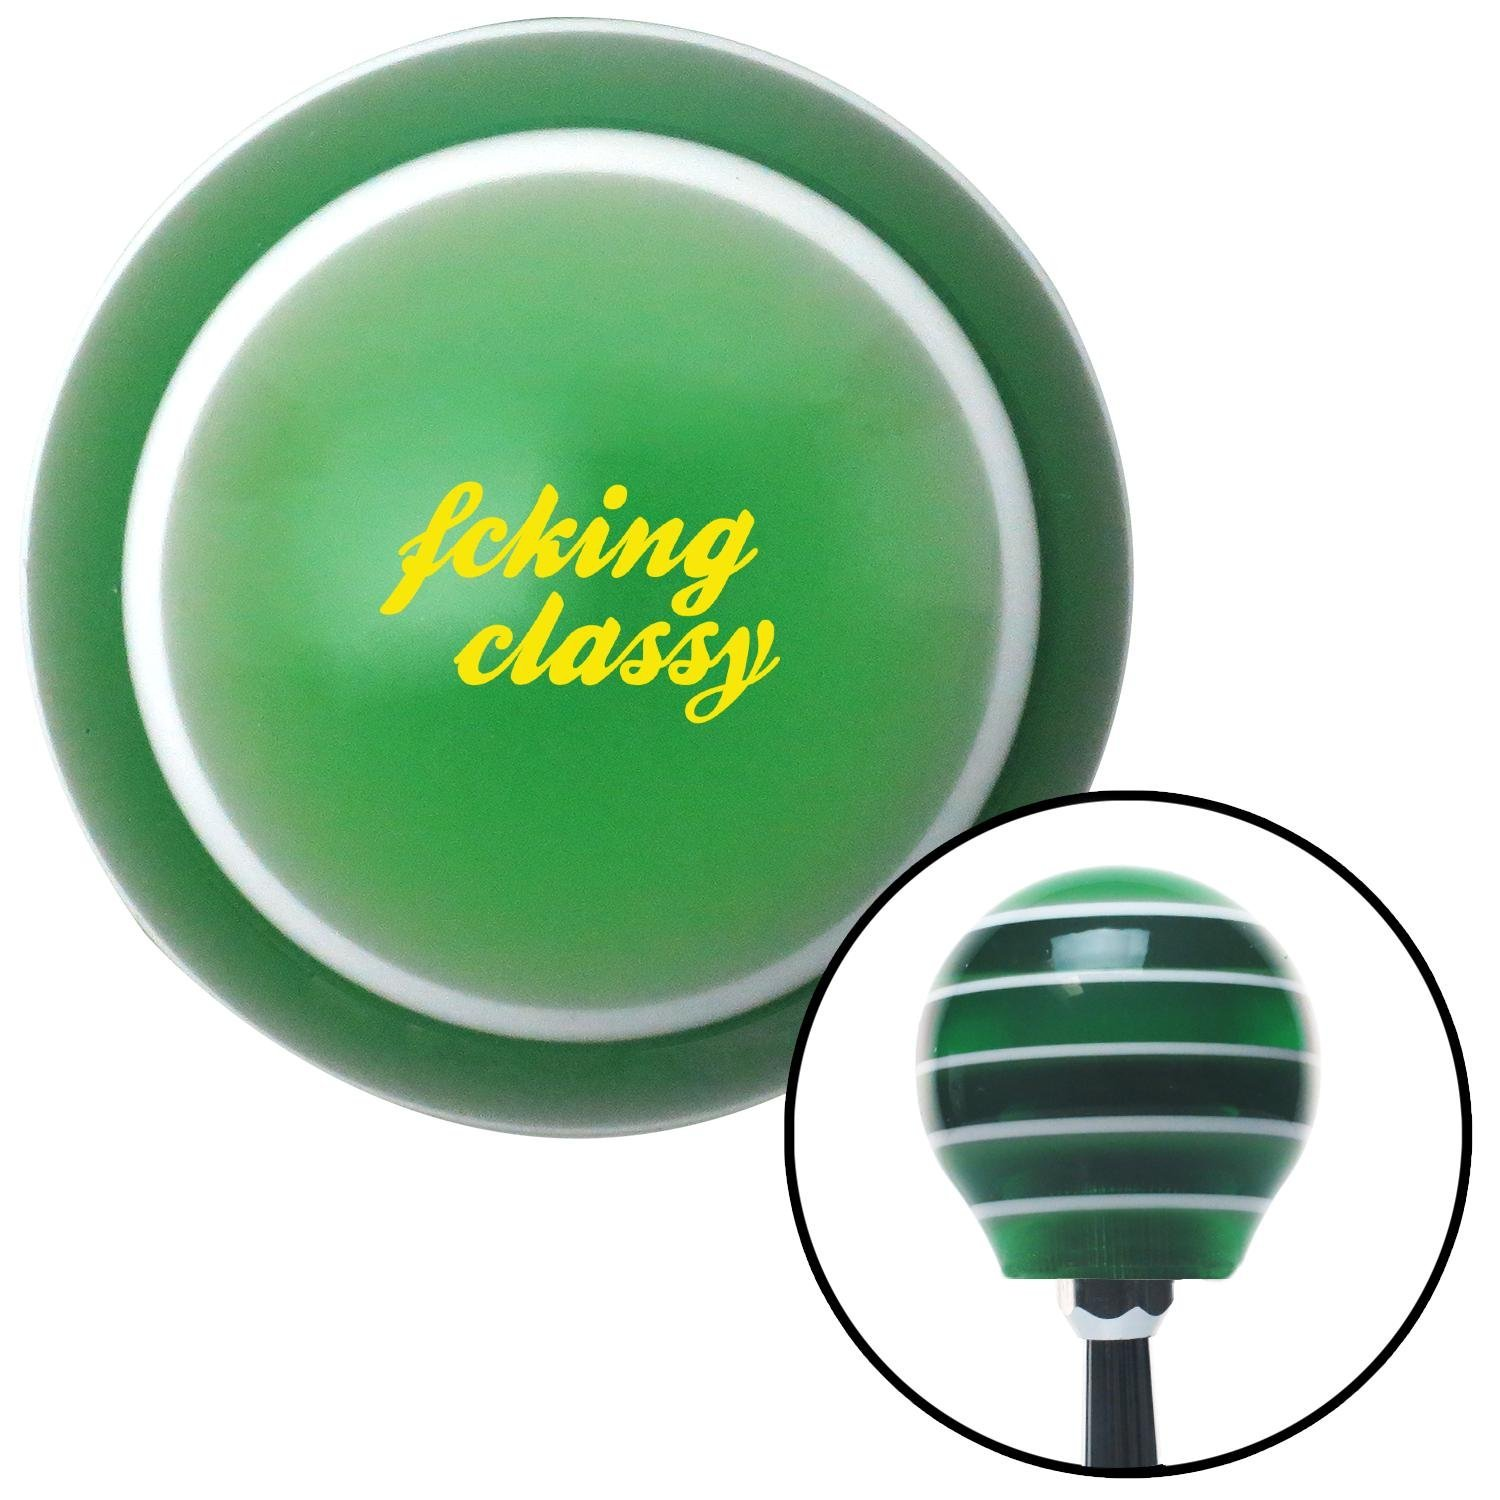 American Shifter 275801 Shift Knob Yellow Fcking Classy Green Stripe with M16 x 1.5 Insert